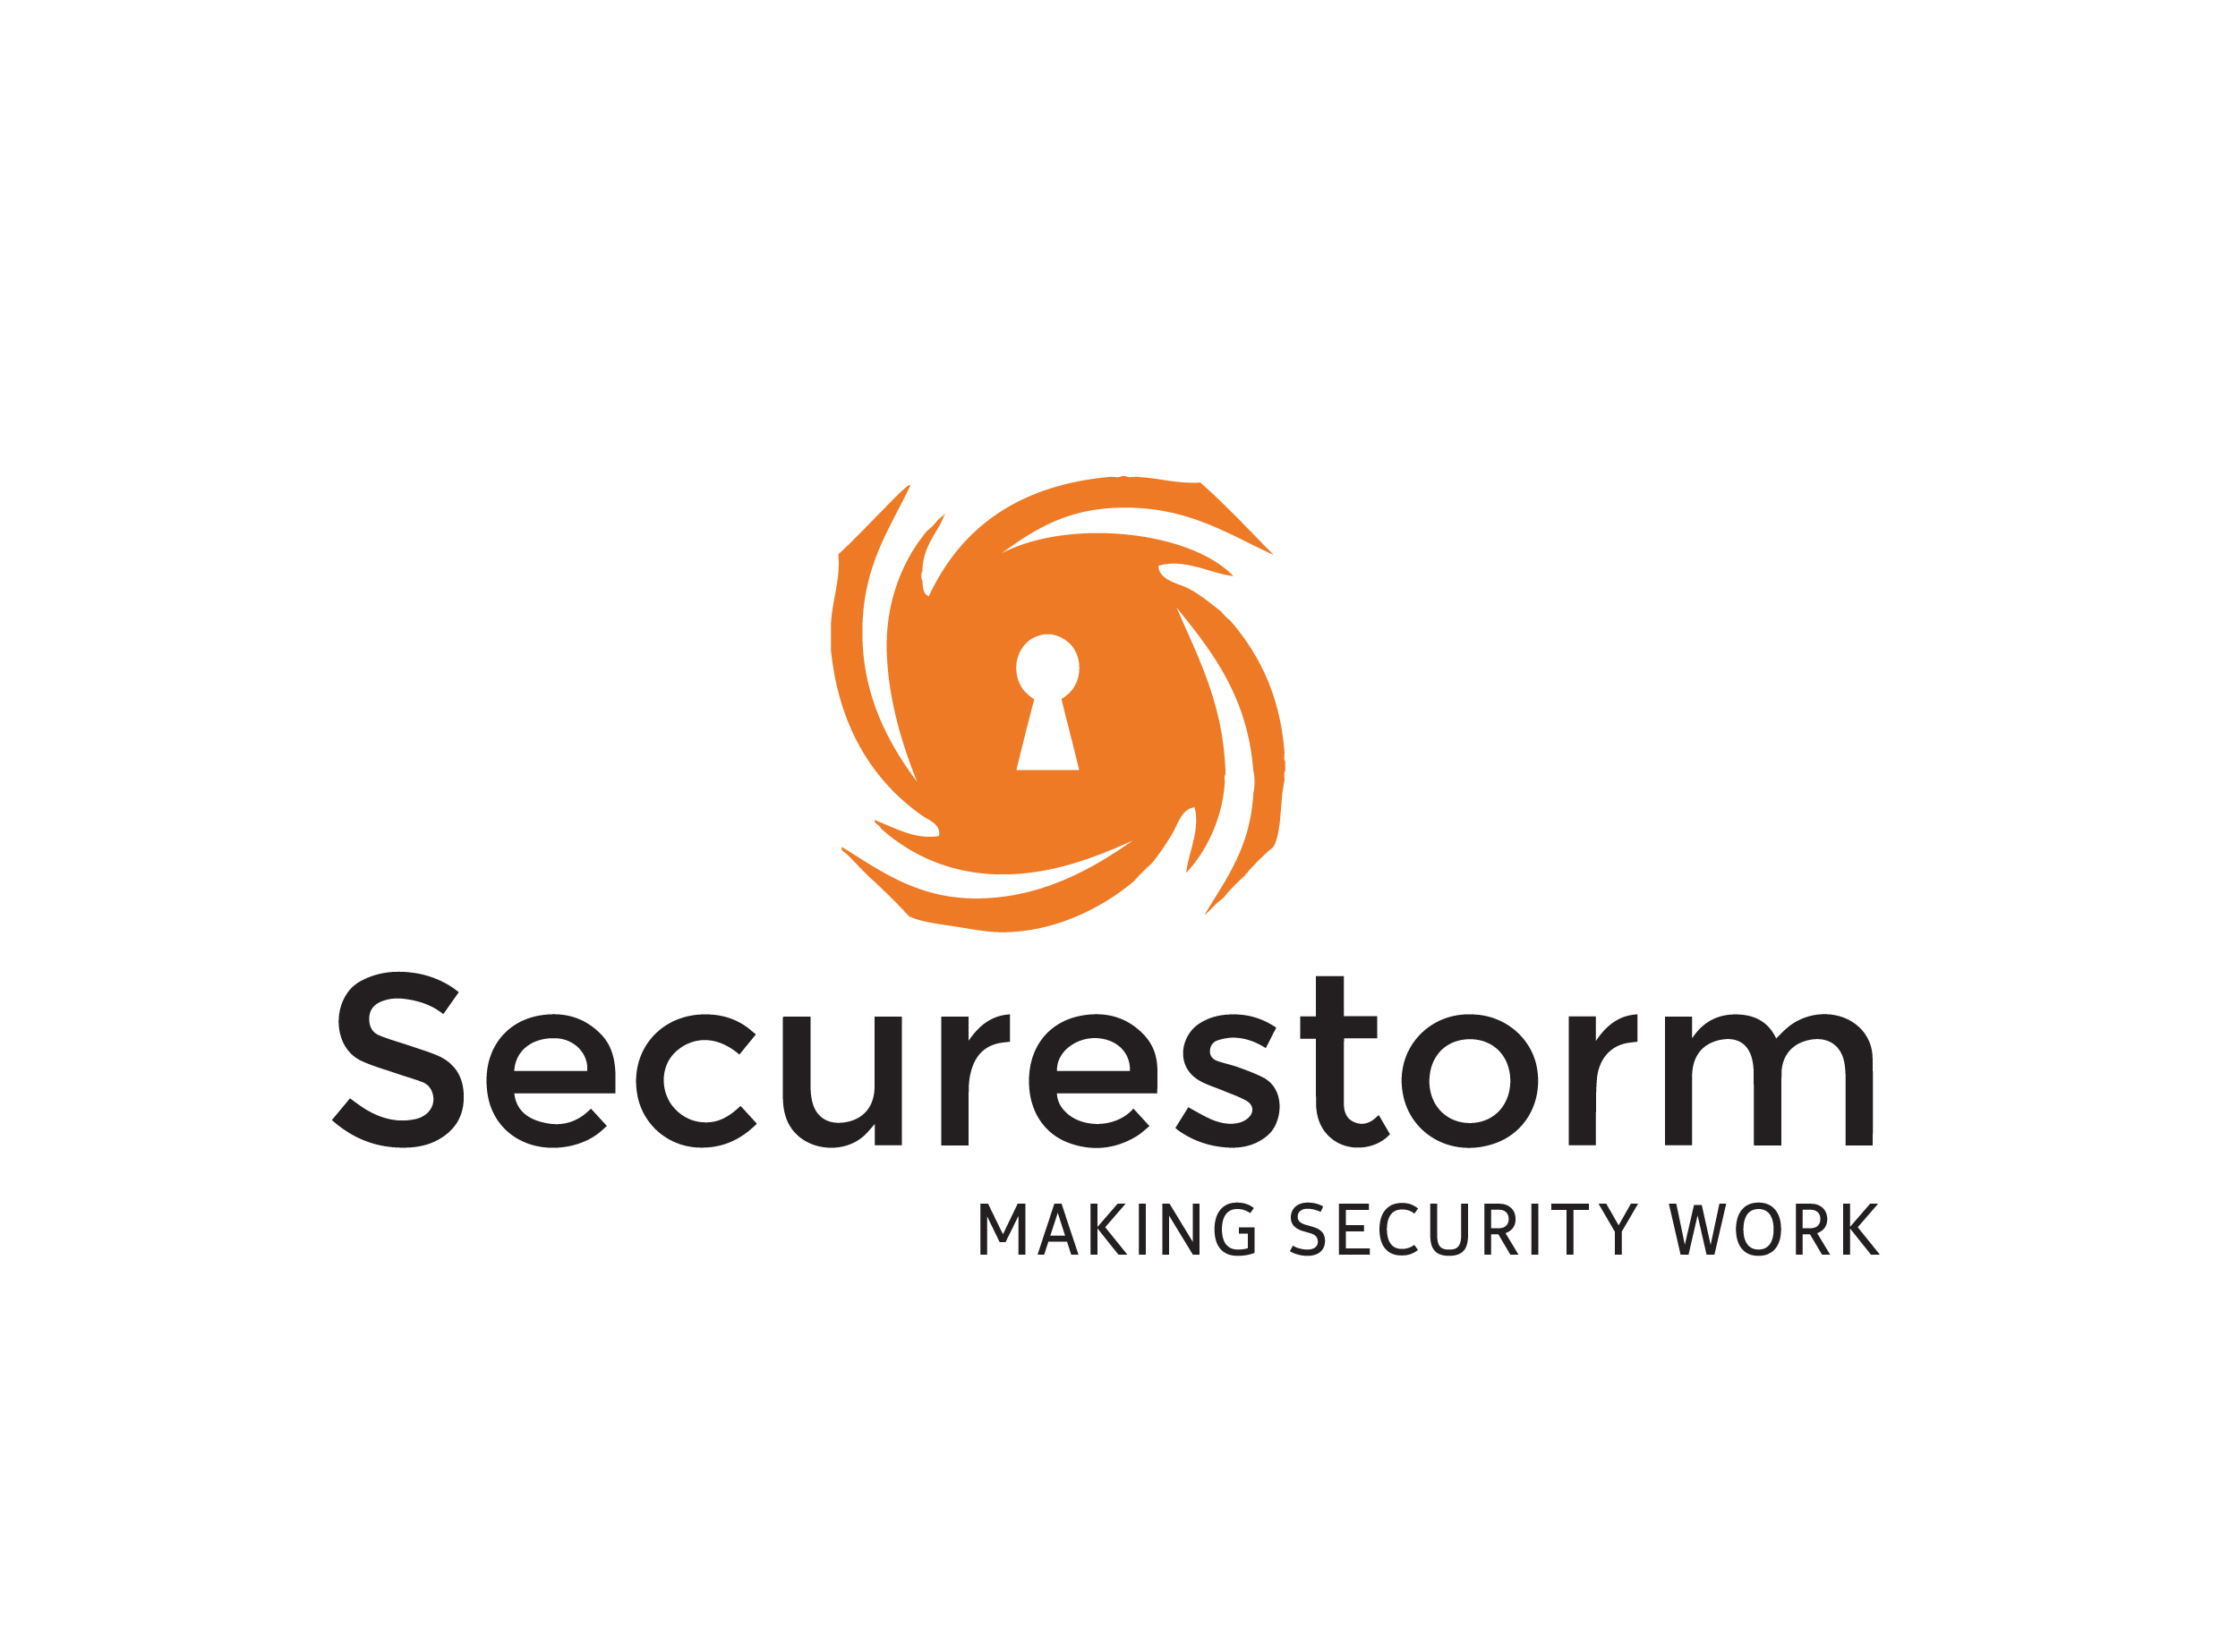 SecureStorm_Logo_MSW-02.jpg